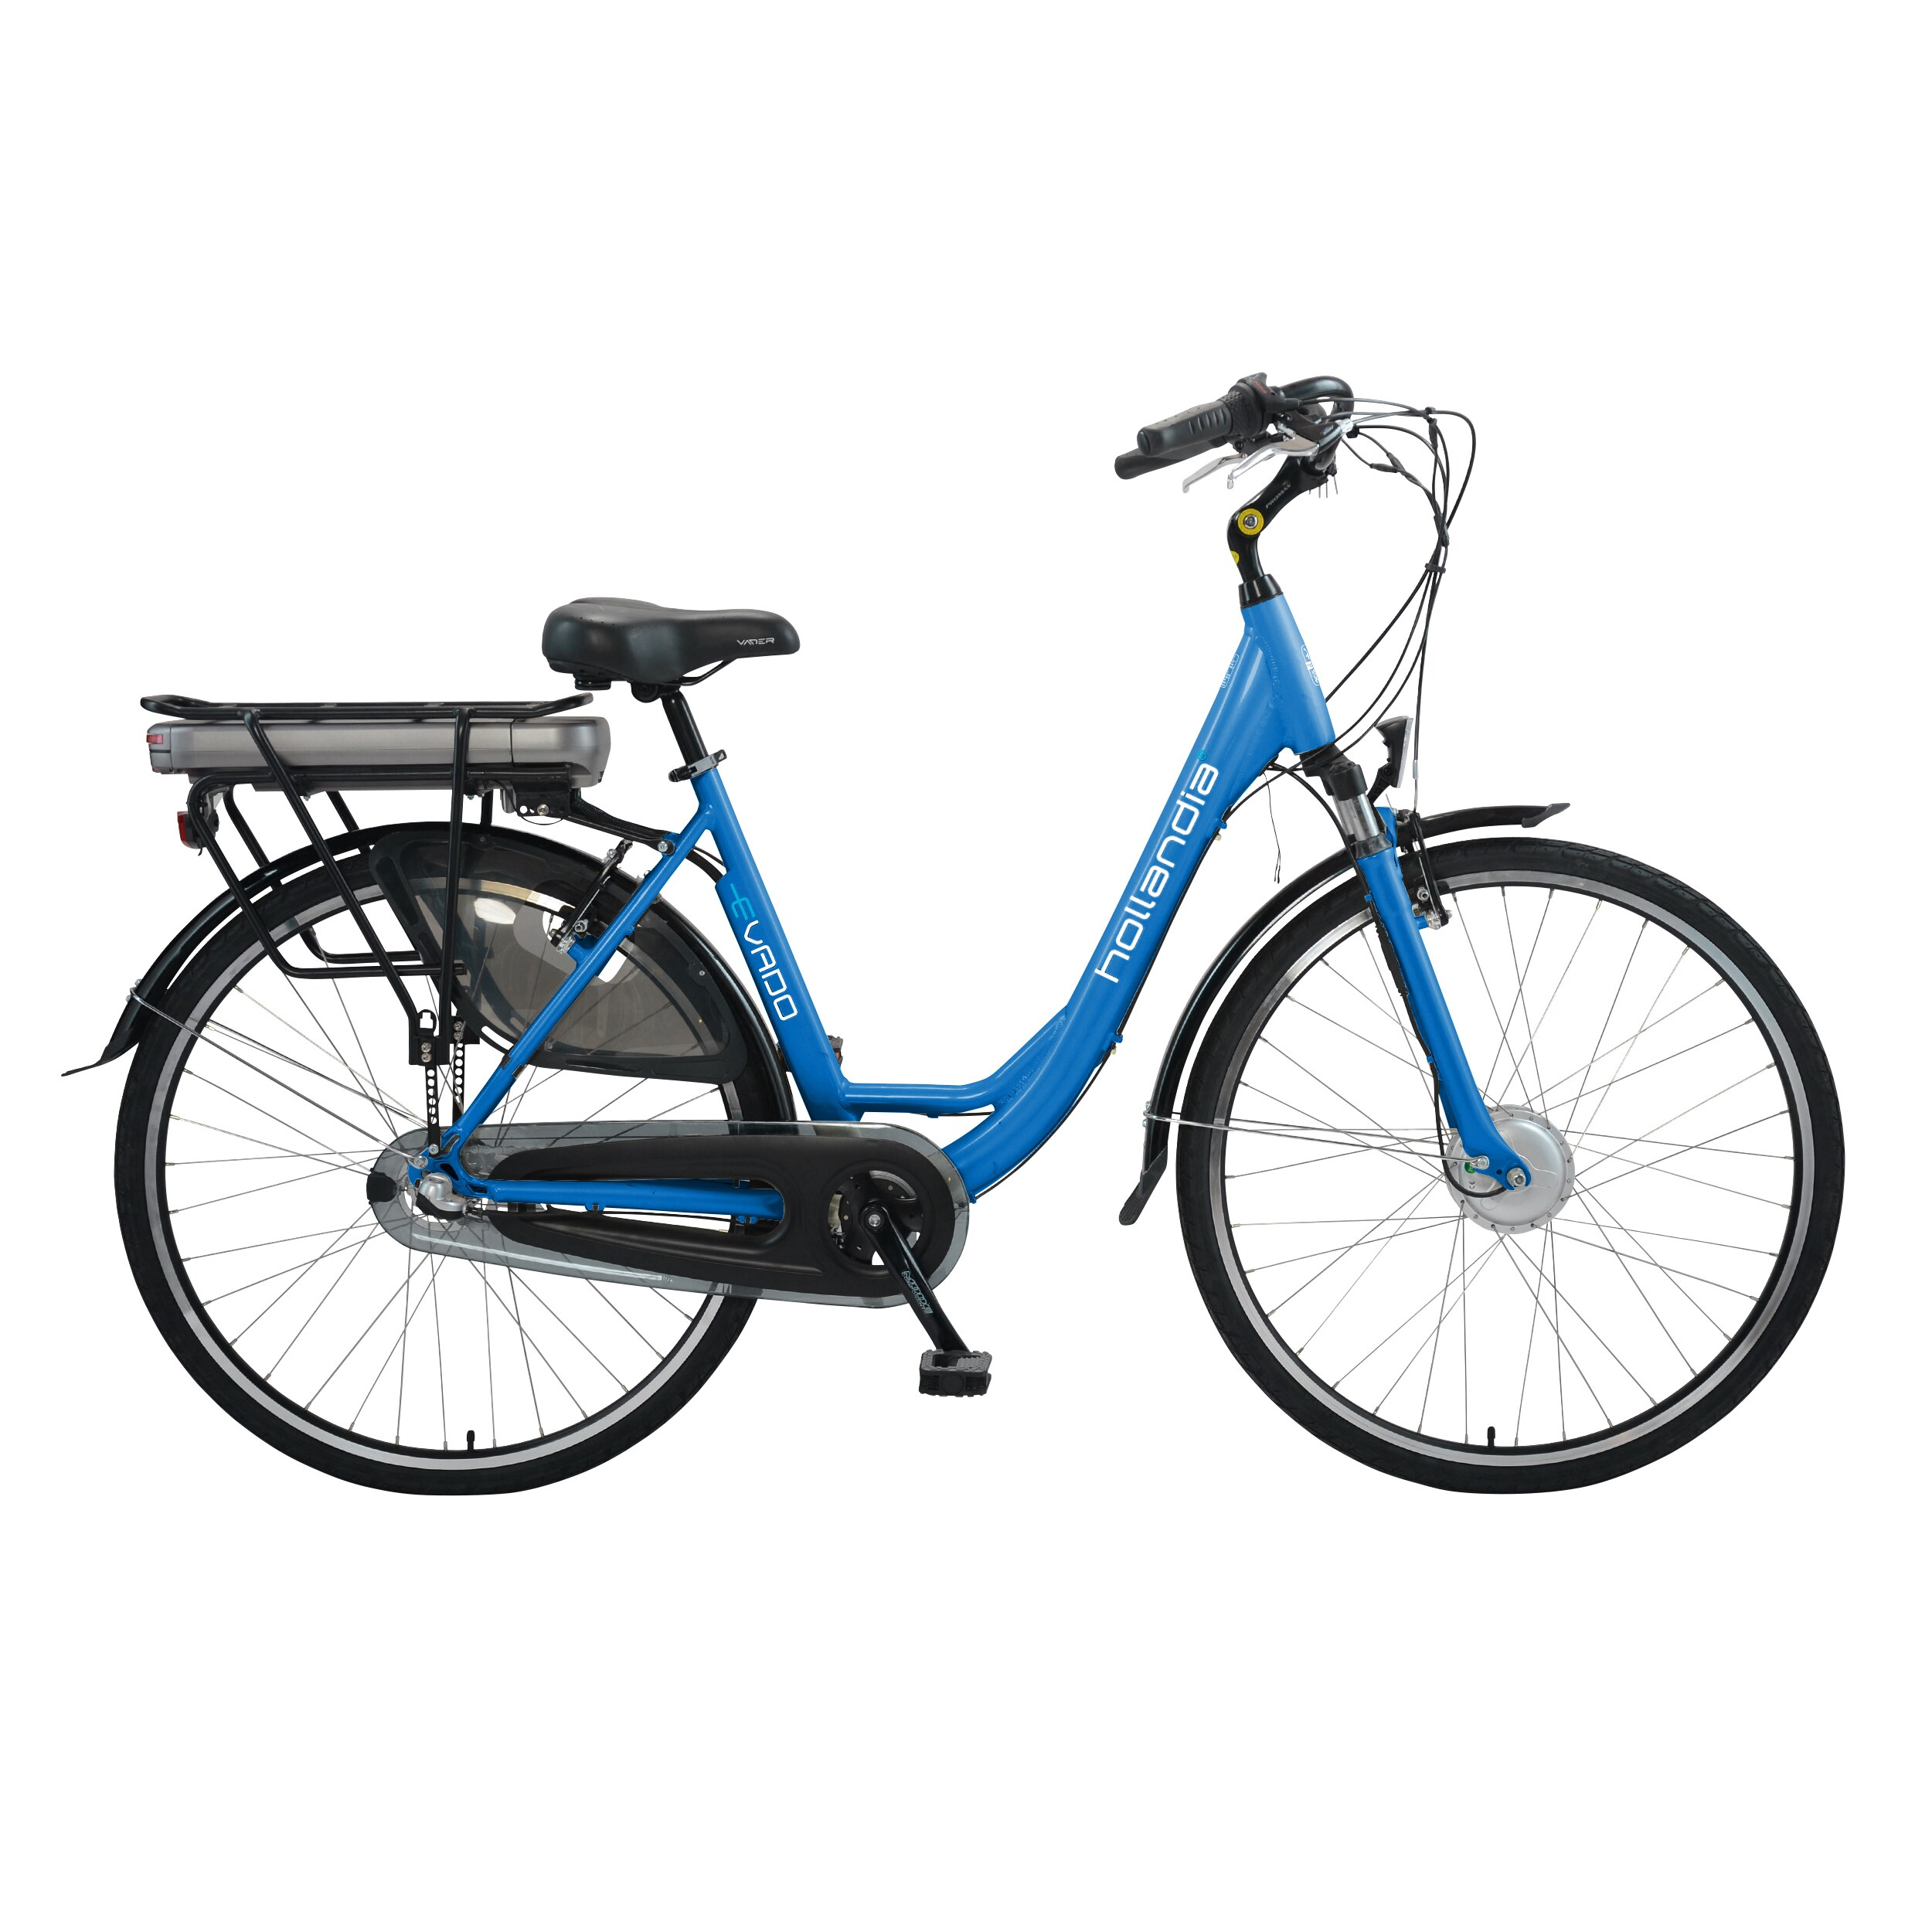 Electric Commuter Bike >> Shop Hollandia Electric City Commuter Bicycle Free Shipping Today